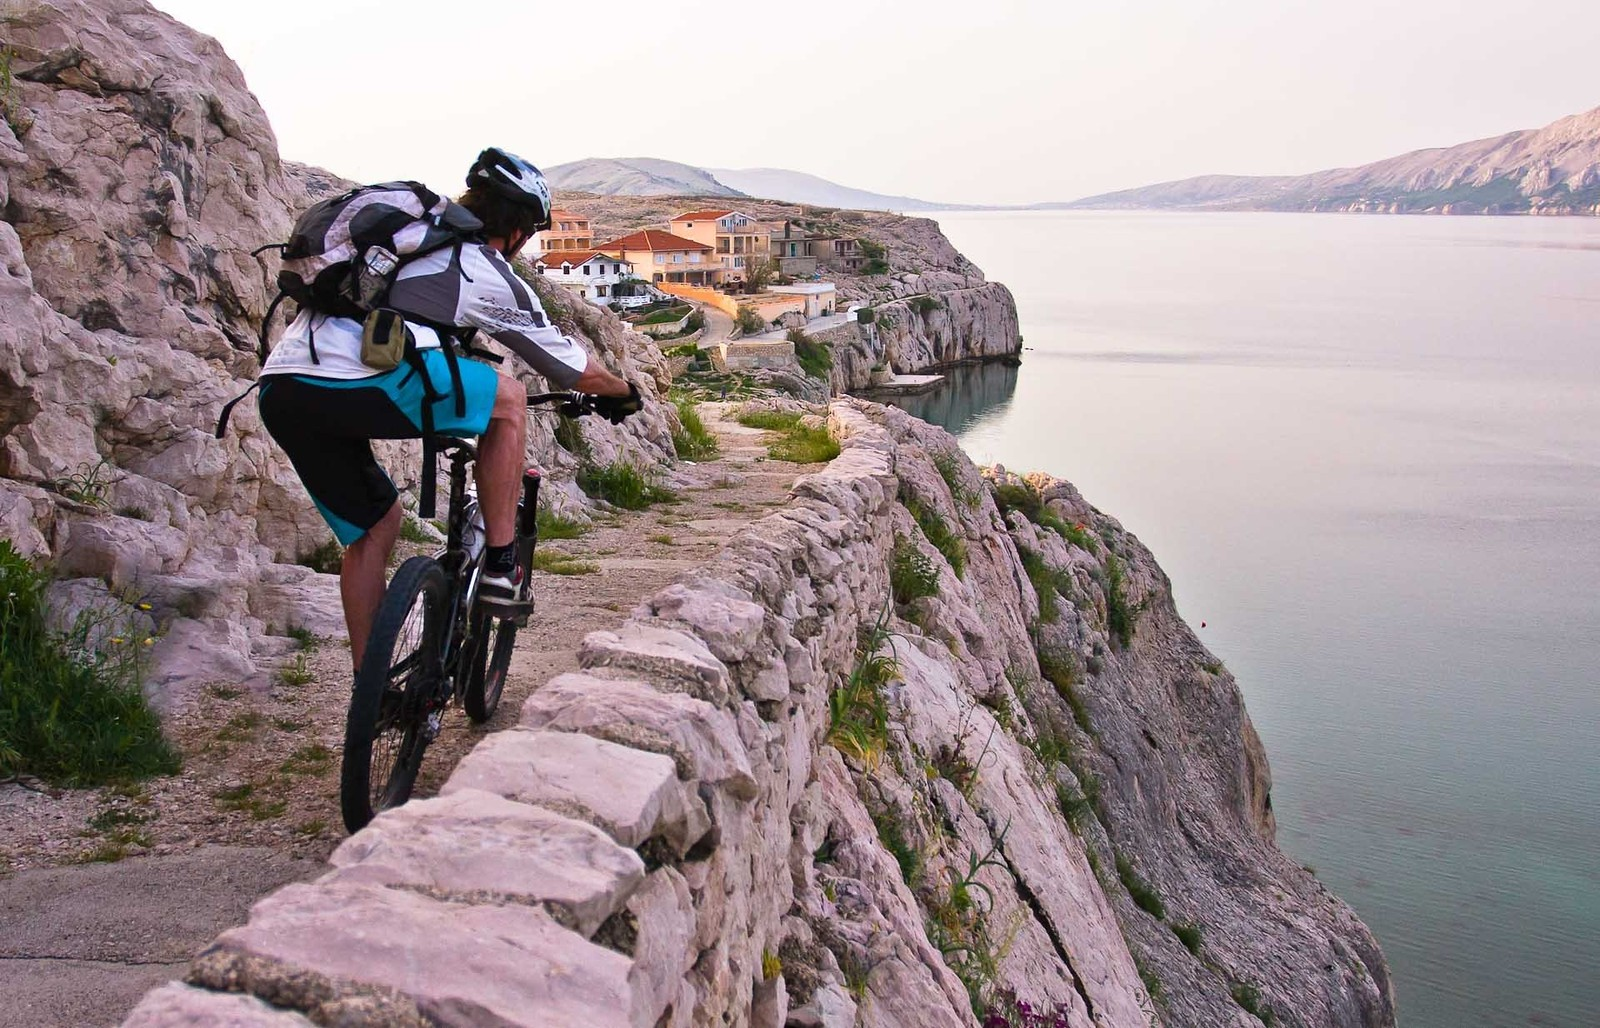 Croatian coast - berto - Mountain Biking Pictures - Vital MTB